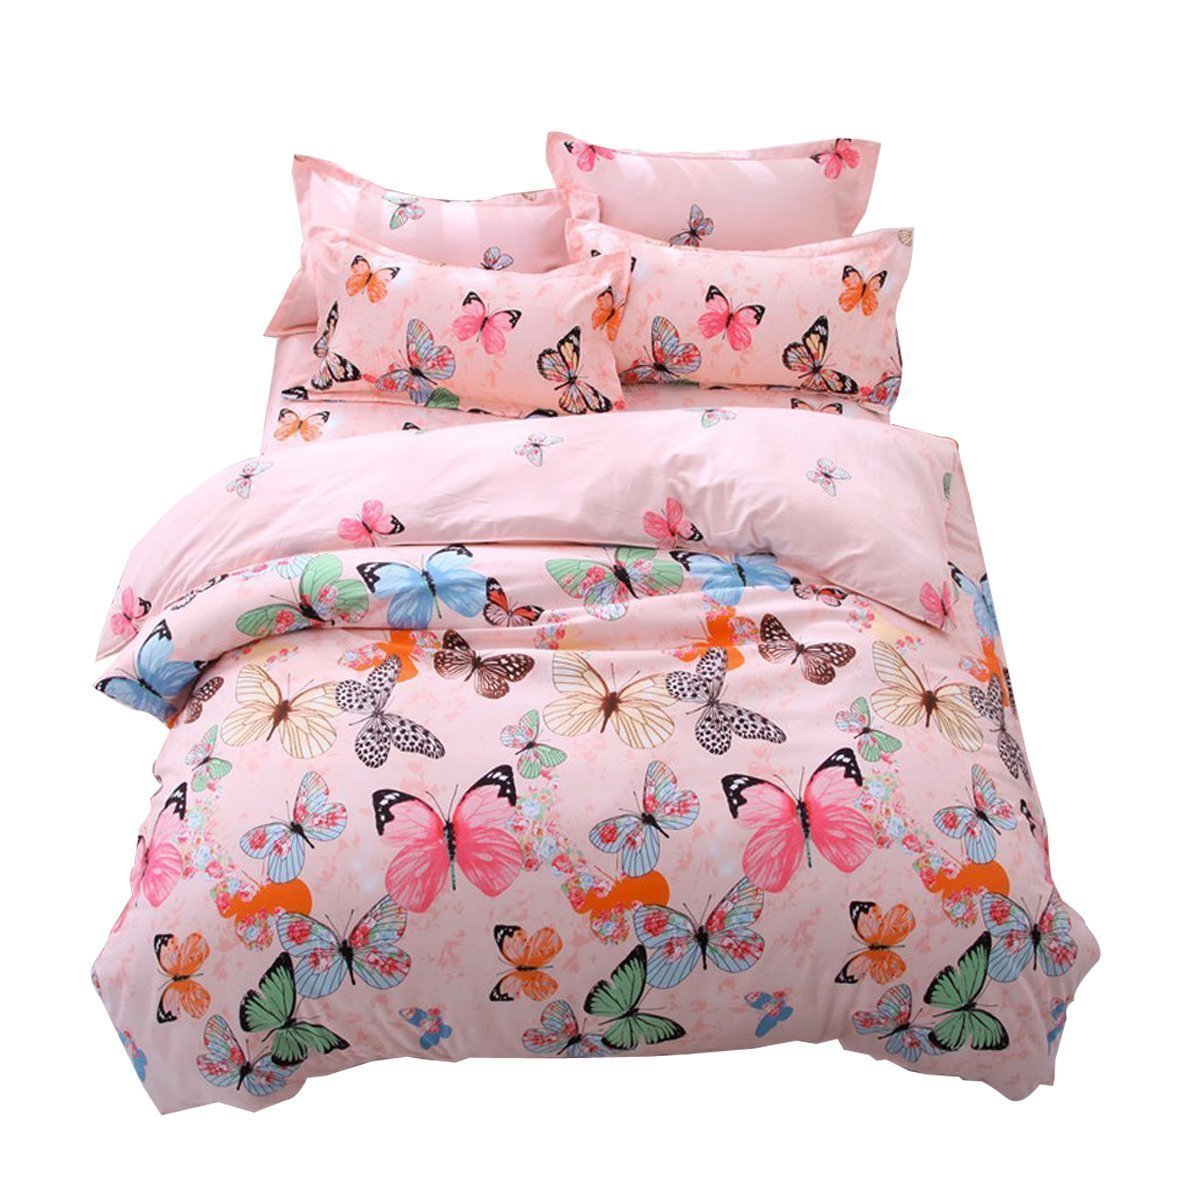 LemonTree Butterfly Bedding Set- Girls Soft Bedding Collection-3Pcs Pink Butterflies Floral Patterns,Hypoallergenic,Microfiber,1 Duvet Cover+2 Pillowcases (Twin, 02 Butterfly)